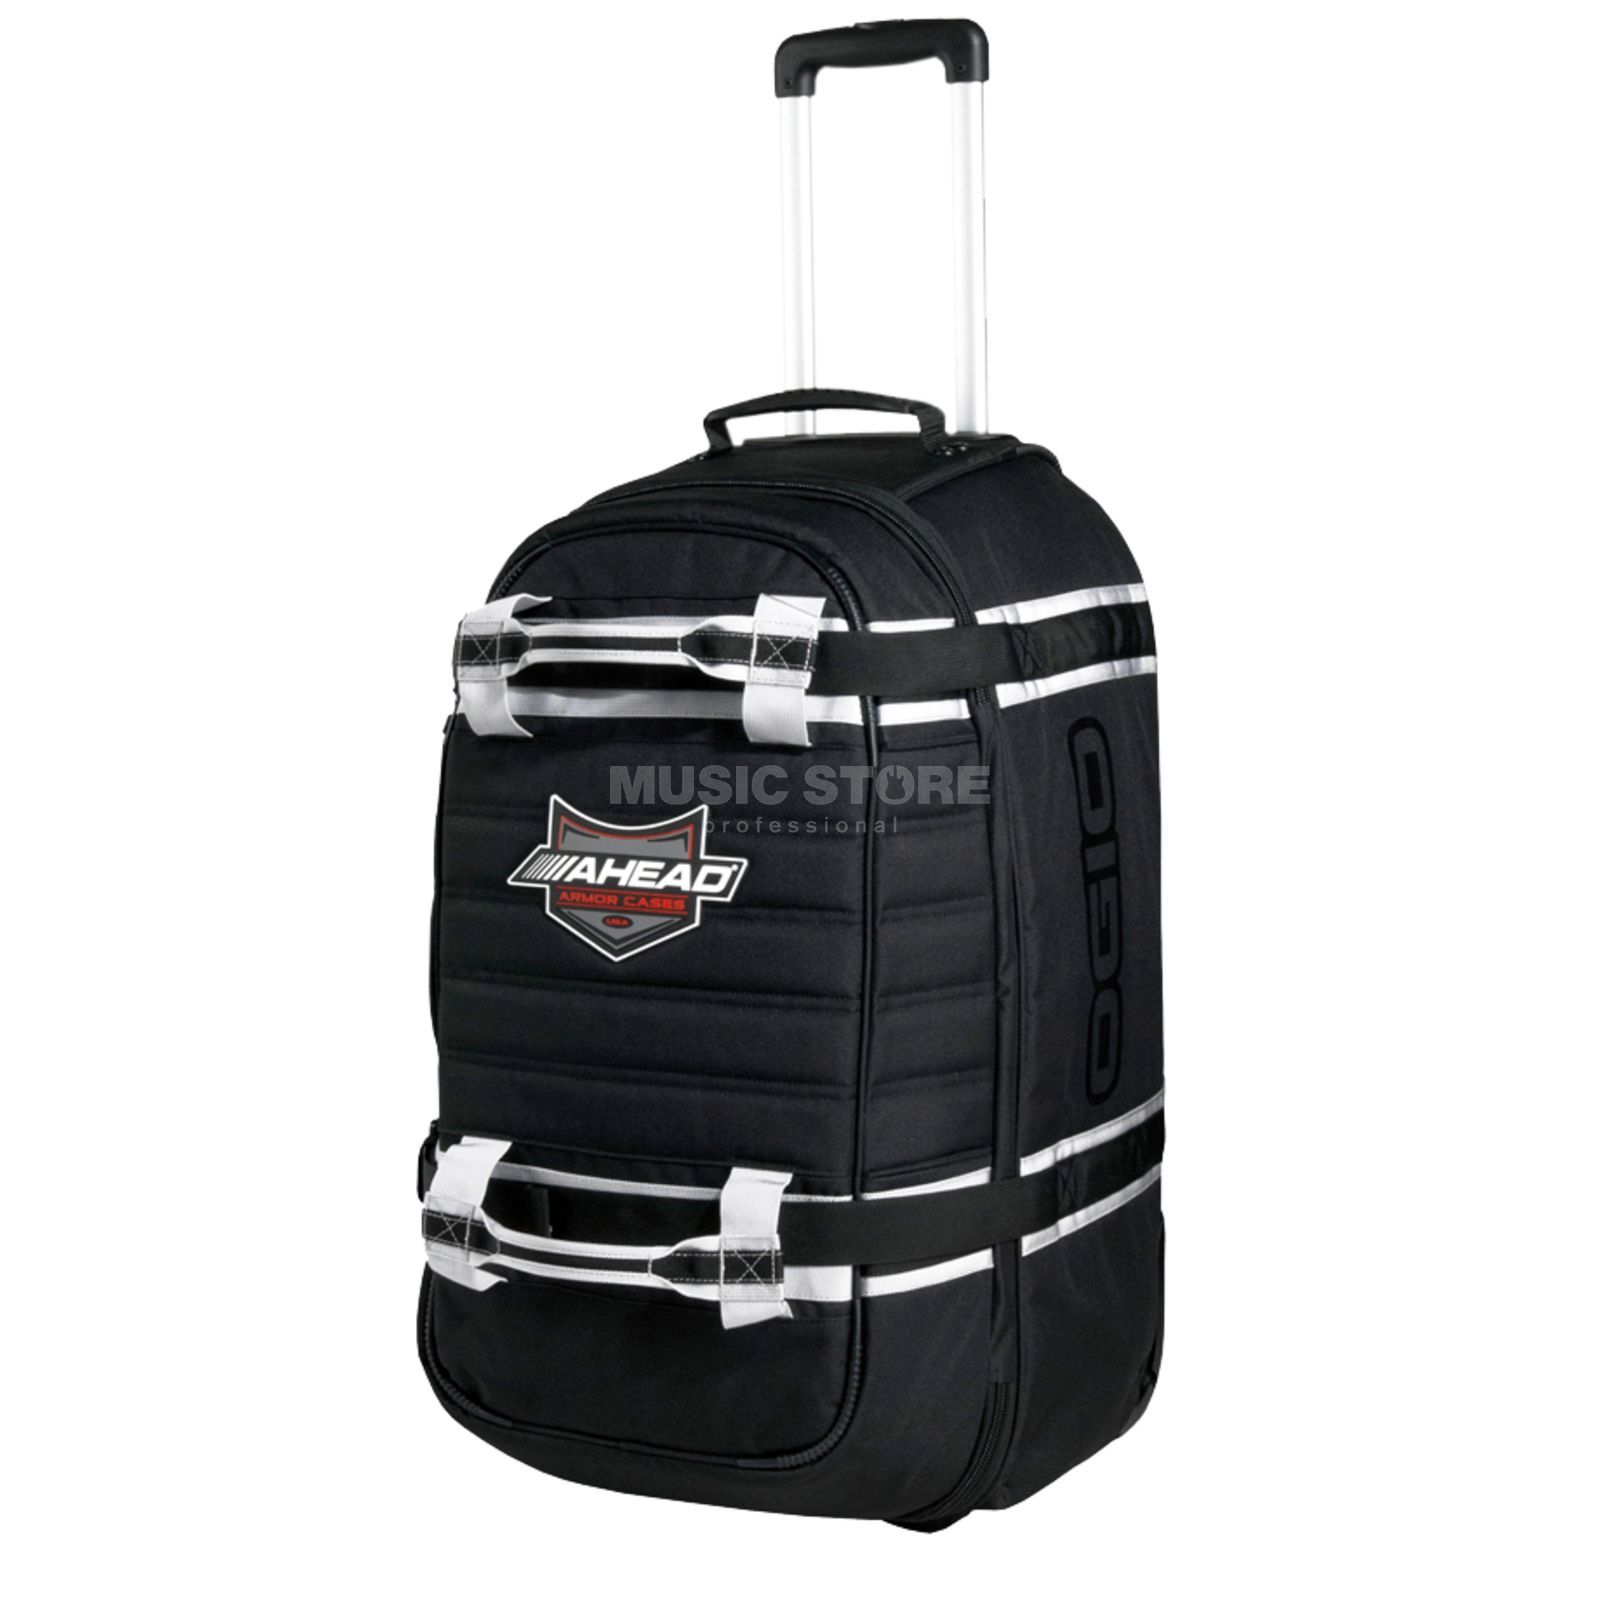 "Ahead Armor Cases Hardware Bag 5028OW, w/wheel, 28""x14""x14"", no SLED Product Image"